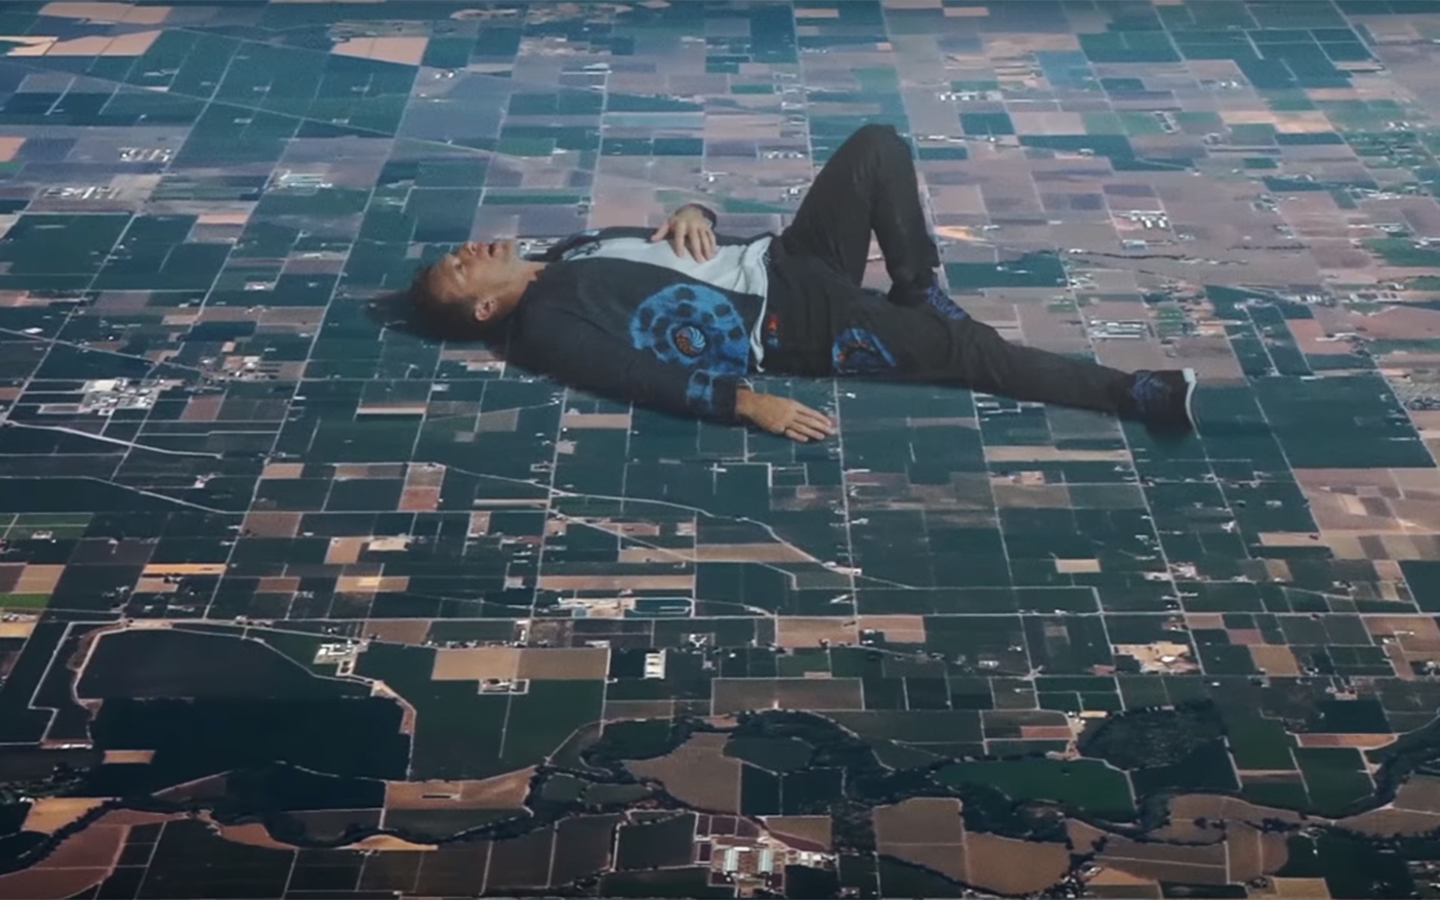 32 Insanely Surreal Wallpapers Coldplays New Video Up Amp Up Gives You